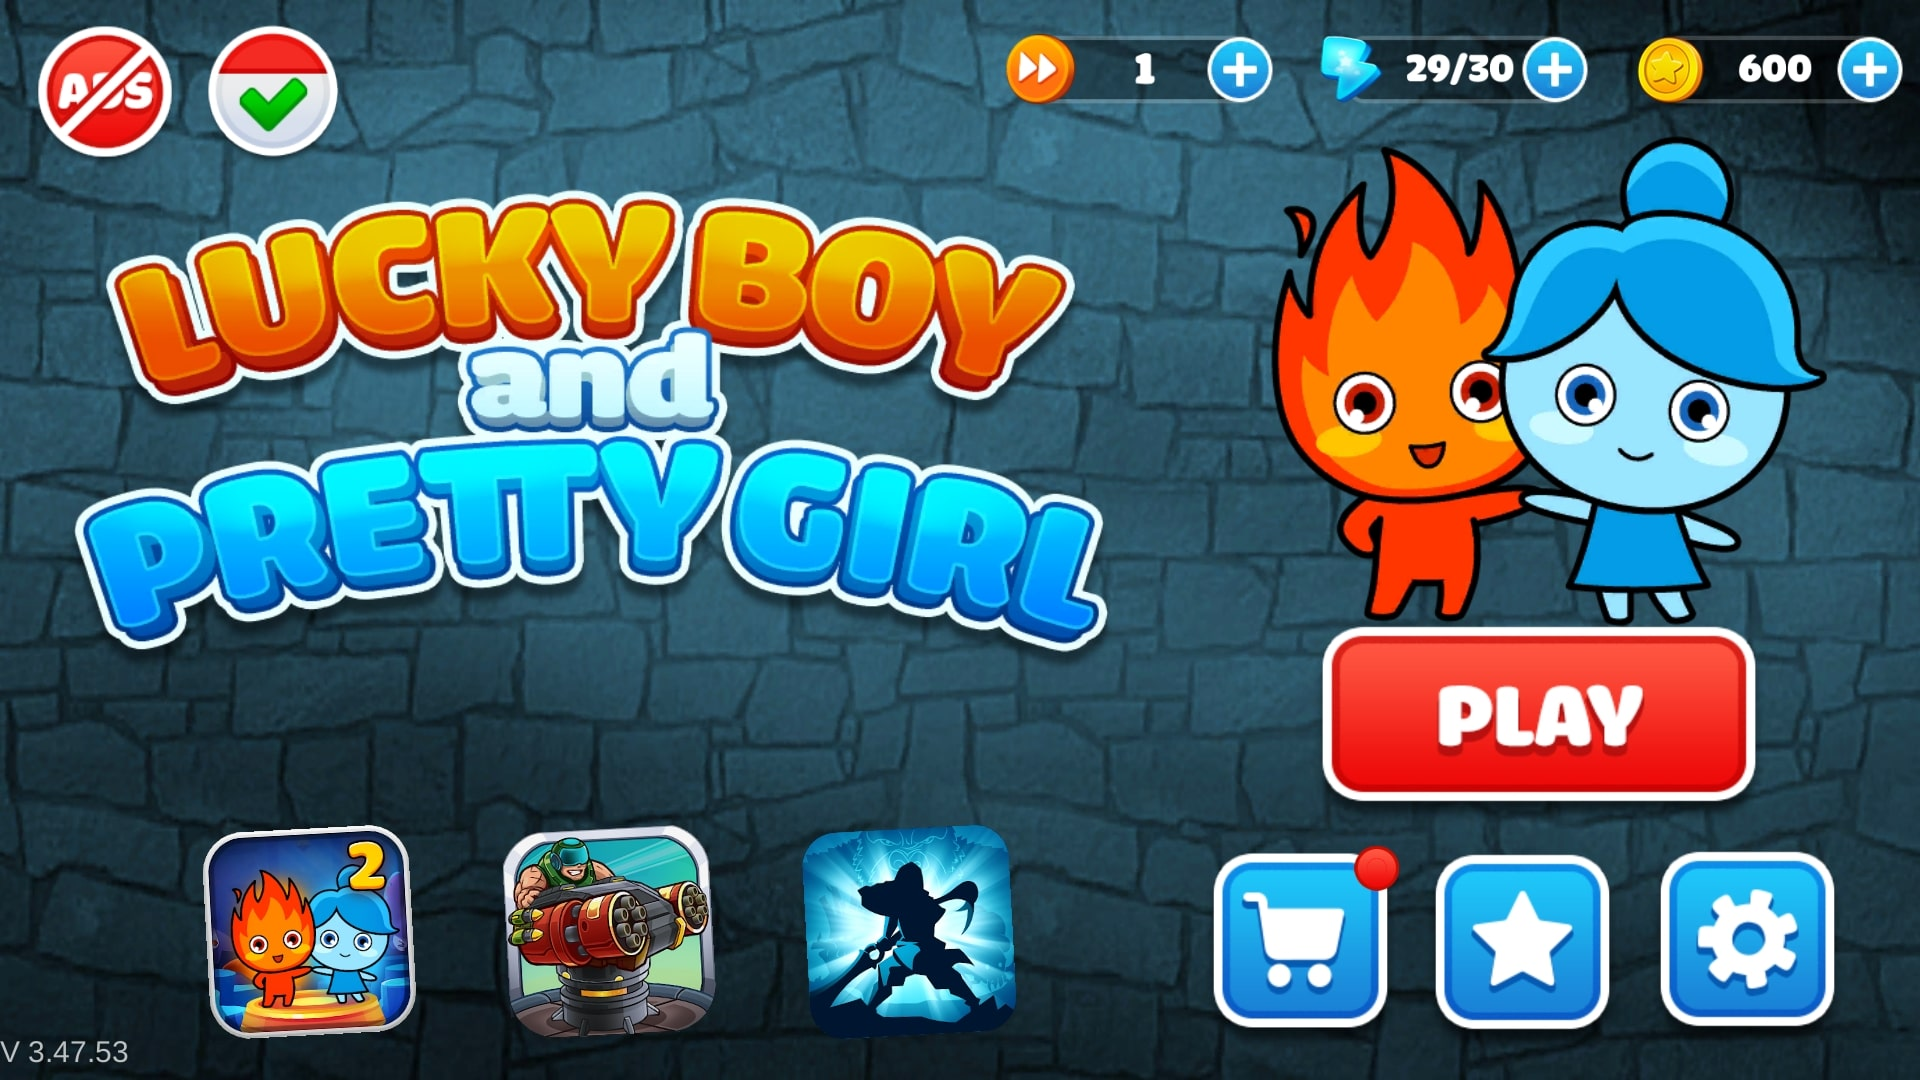 Download LuckyBoy and PrettyGirl - Crystal Temple Maze APK - For Android 3